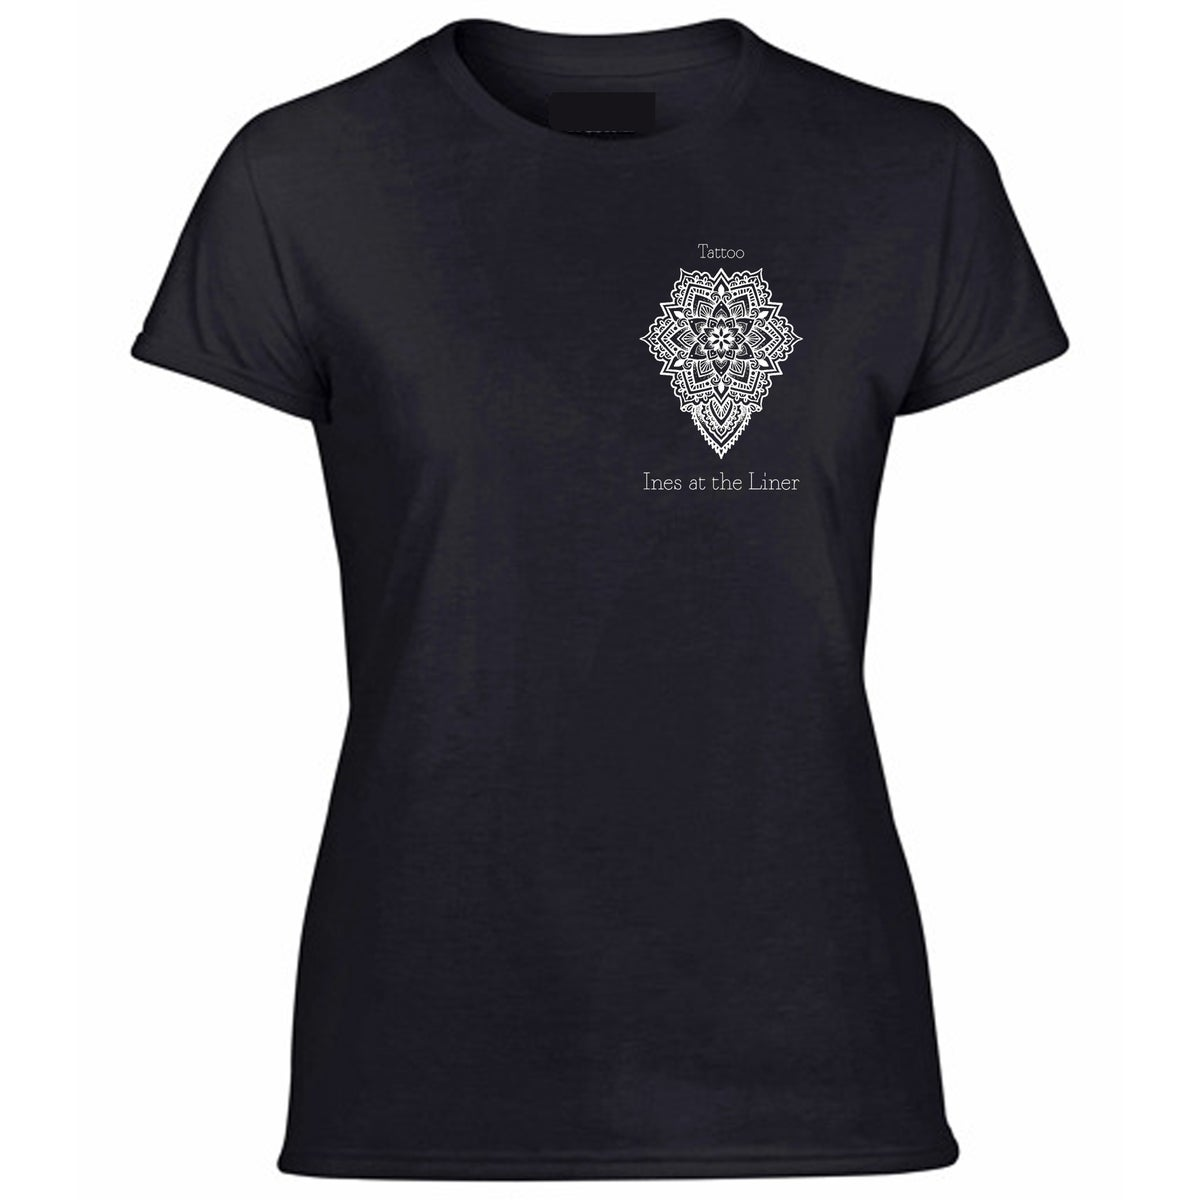 Image of T-shirt Ines at the Liner woman